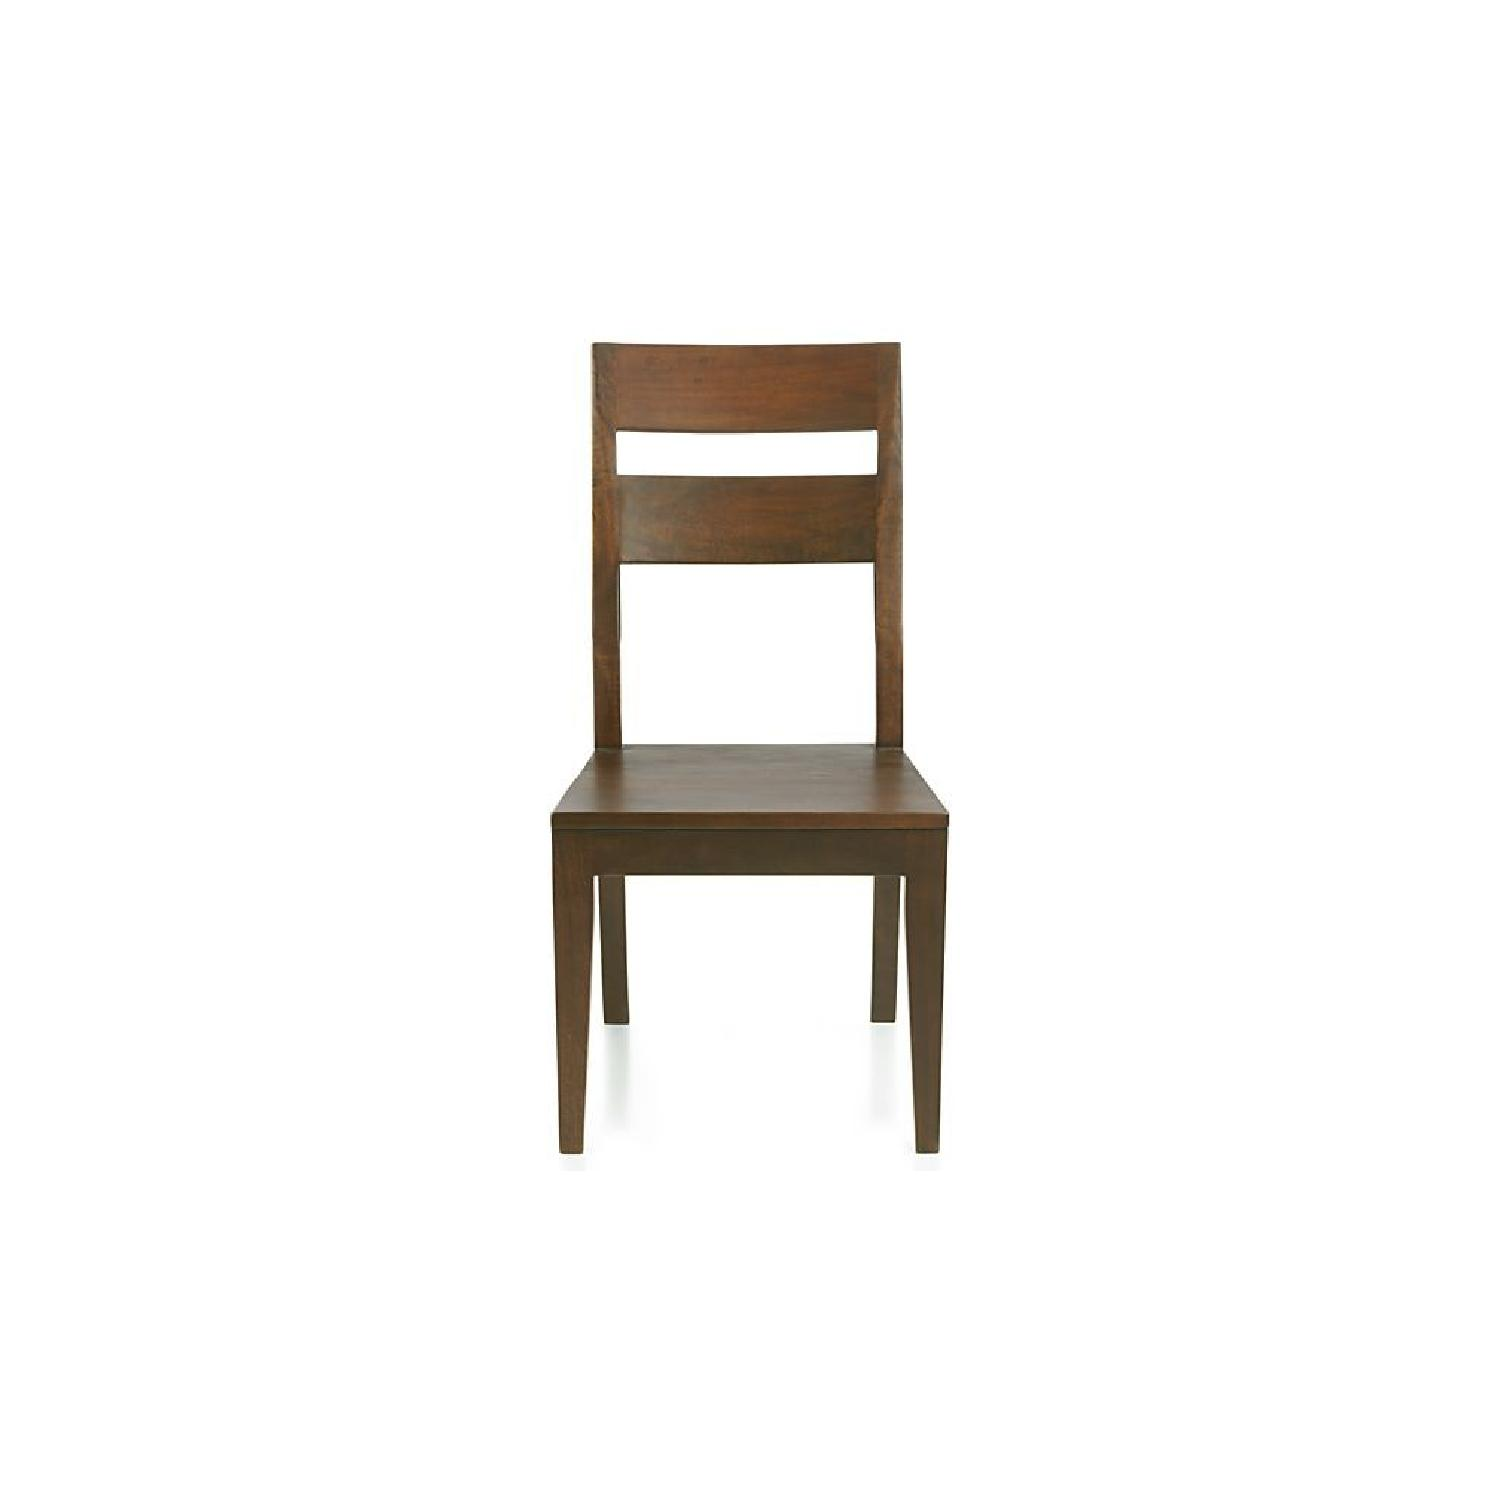 Crate & Barrel Basque Wood Dining Chairs - image-0